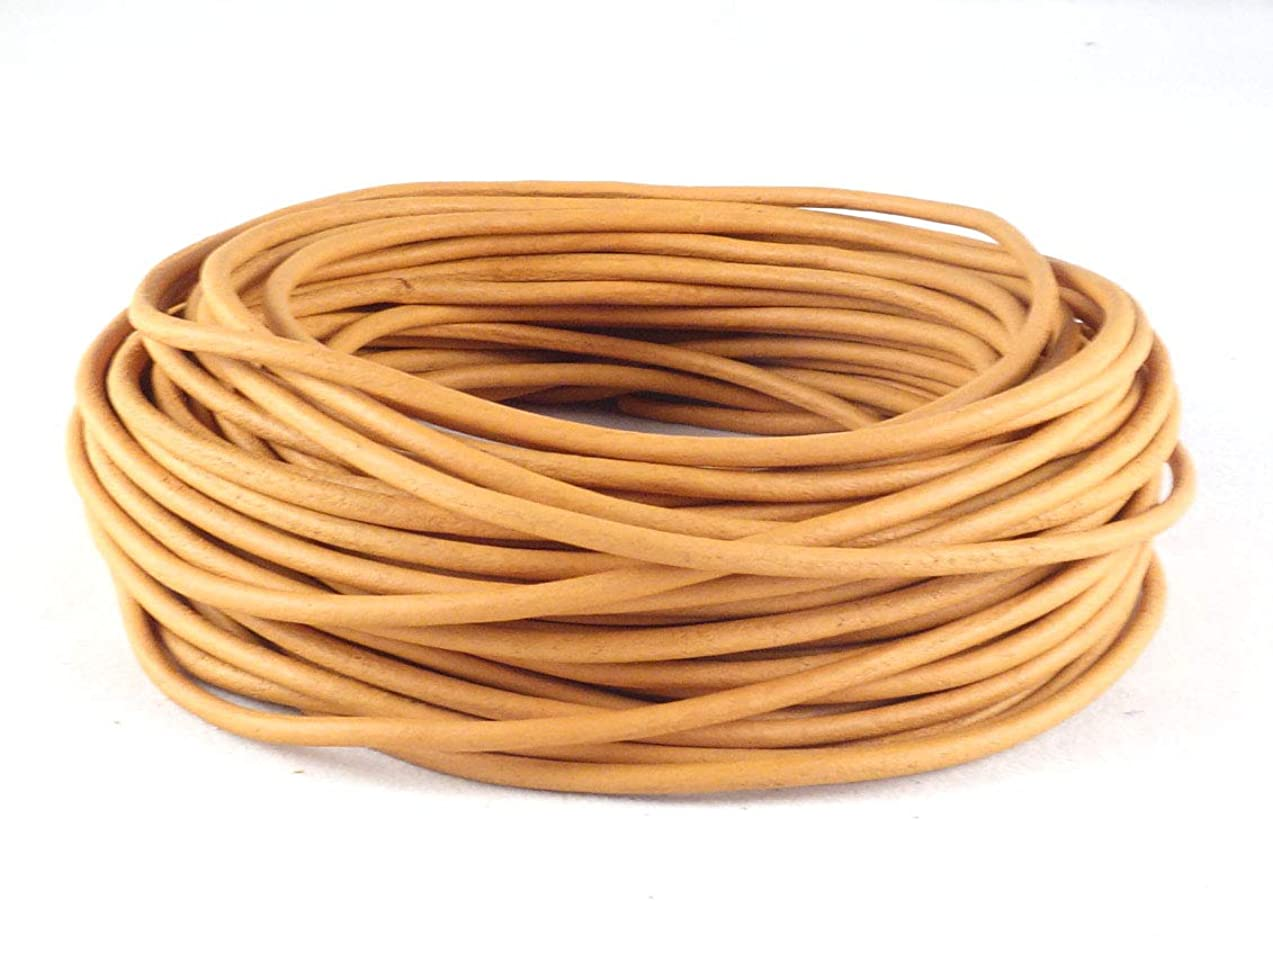 cords craft 2.0mm Genuine Round Leather Cord Leather String Matte Finish for Jewelry Making Bracelet Necklace Beading, 10 Meters / 10.93 Yards, Natural Dye